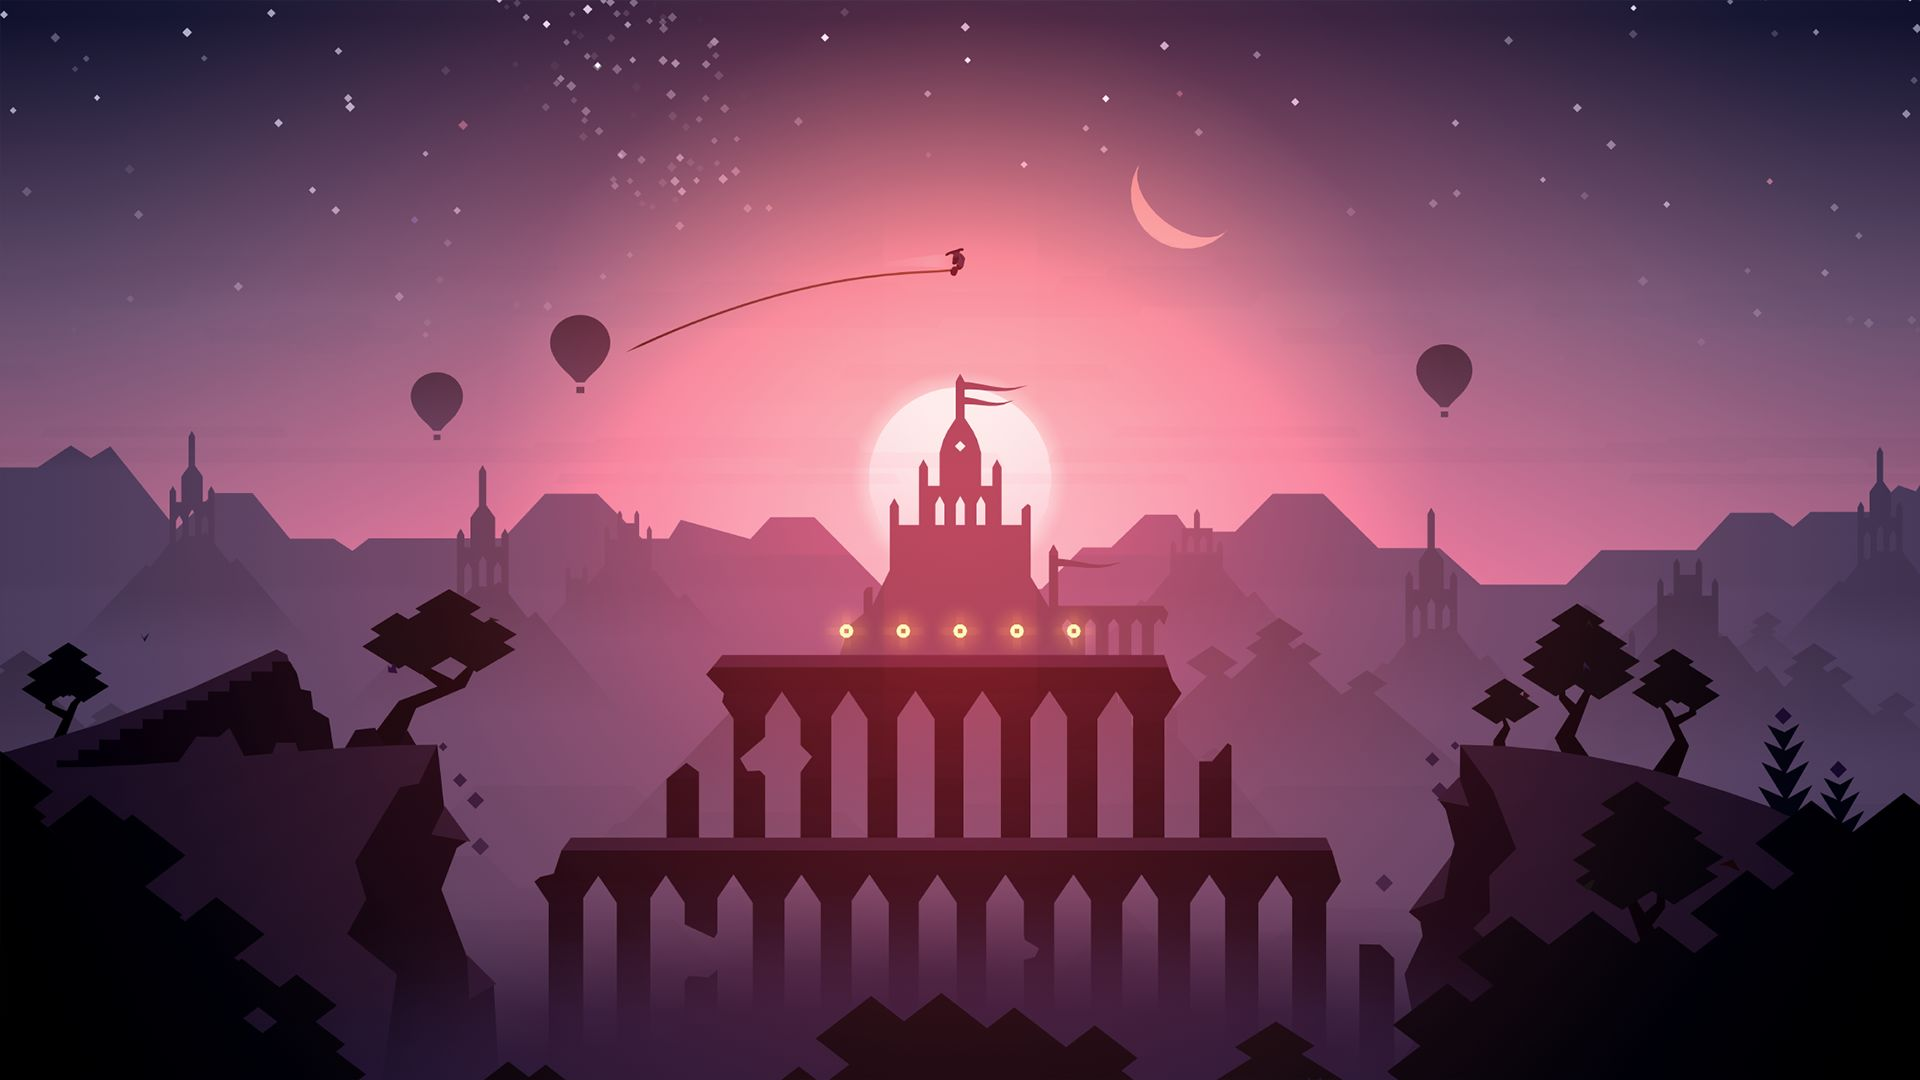 ALTO'S ODYSSEY: THE LOST CITY IS AVAILABLE NOW ON APPLE ARCADE